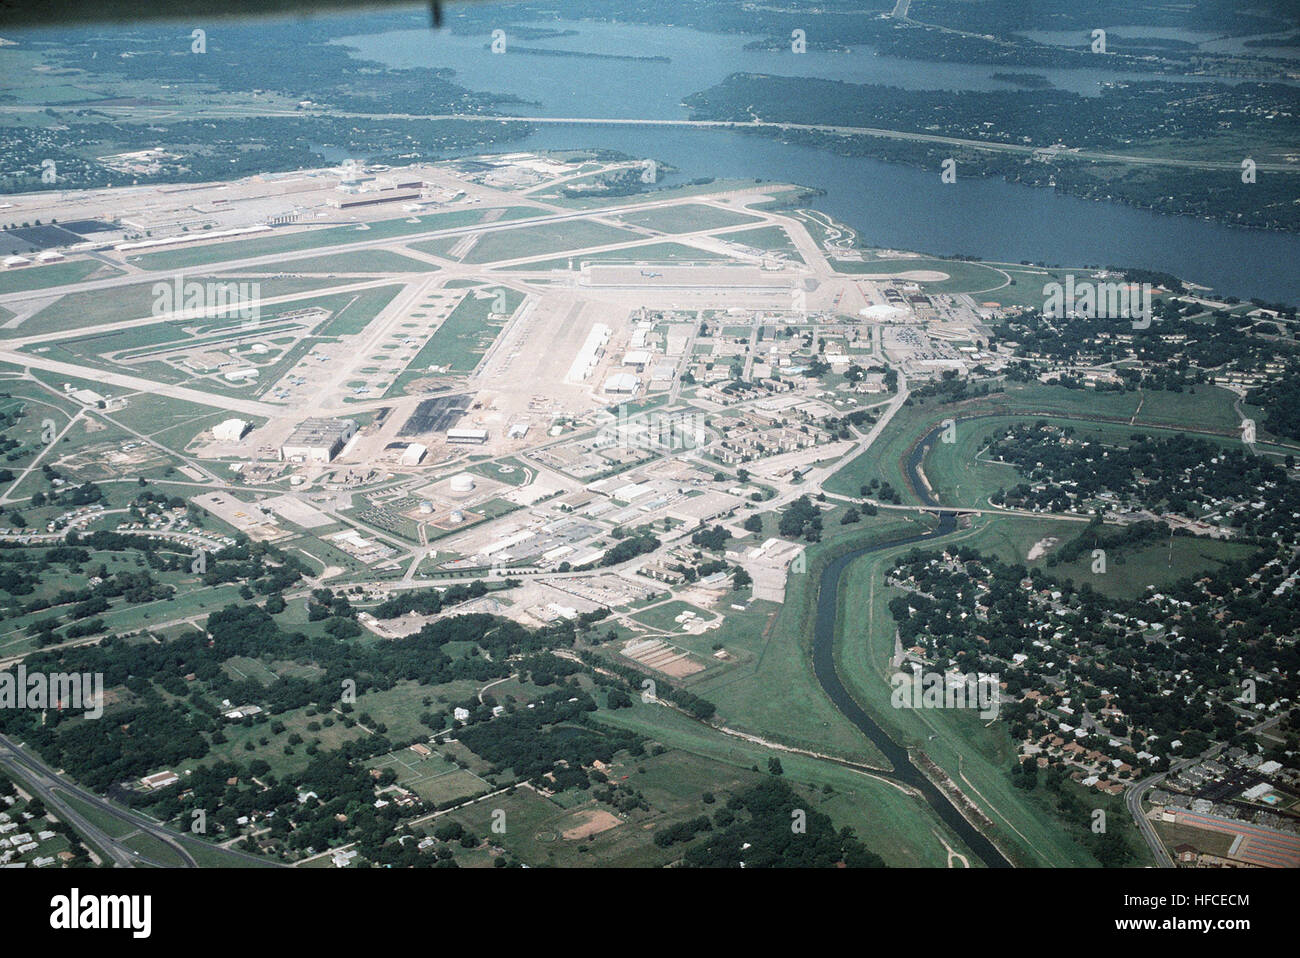 High Oblique Aerial View Looking East Of Naval Air Station Fort Worth Joint Reserve Base This Consolidated Military Airfield Is Under